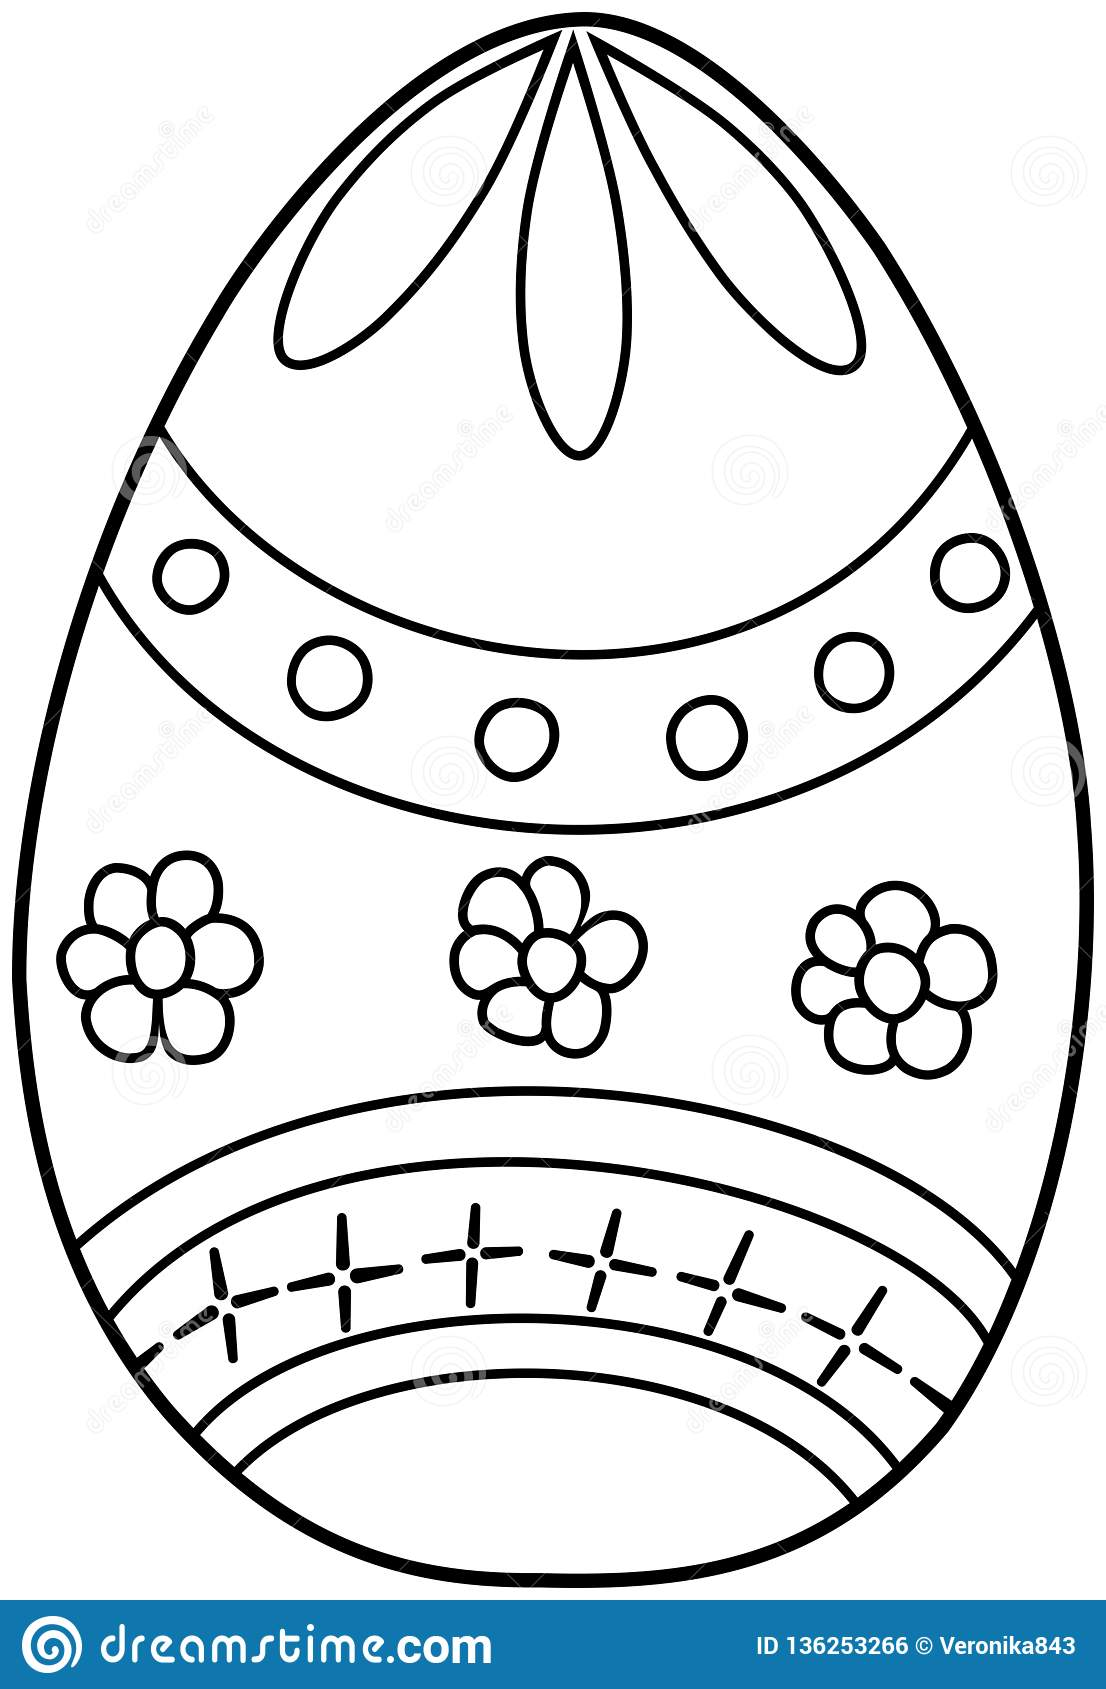 coloring ~ Eastery Coloring Book Clipart Images Of Eggs Free.